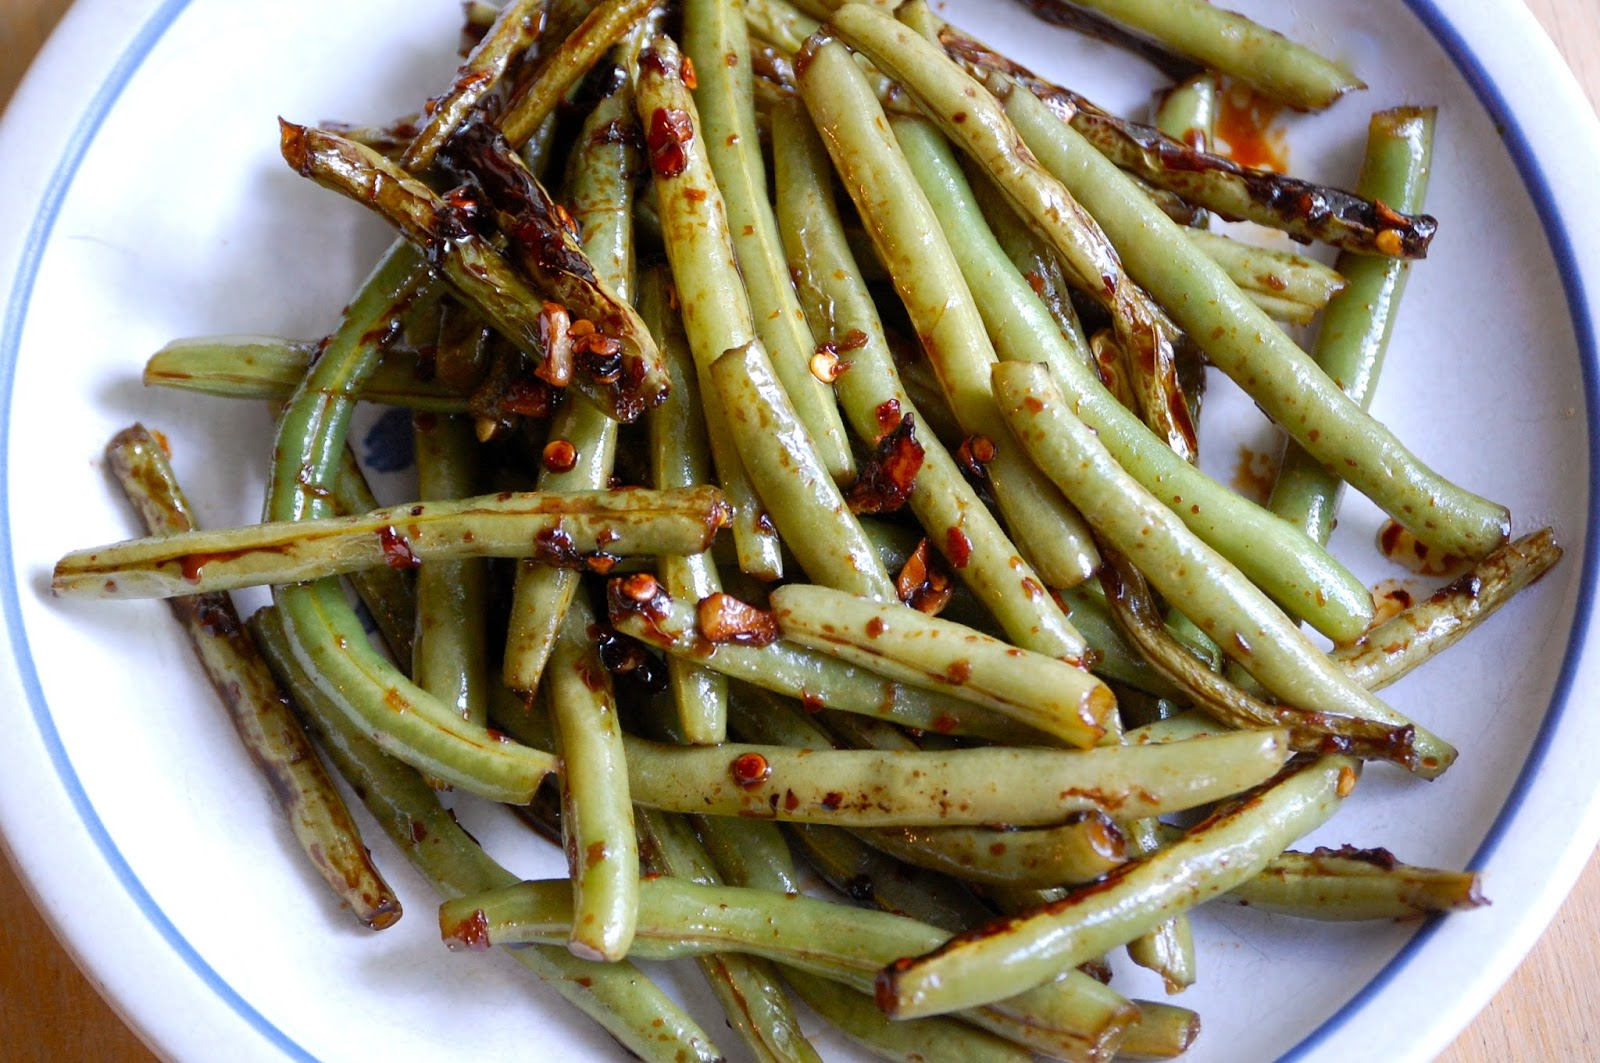 Heritage Schoolhouse: PF Chang's Style Spicy Green Beans